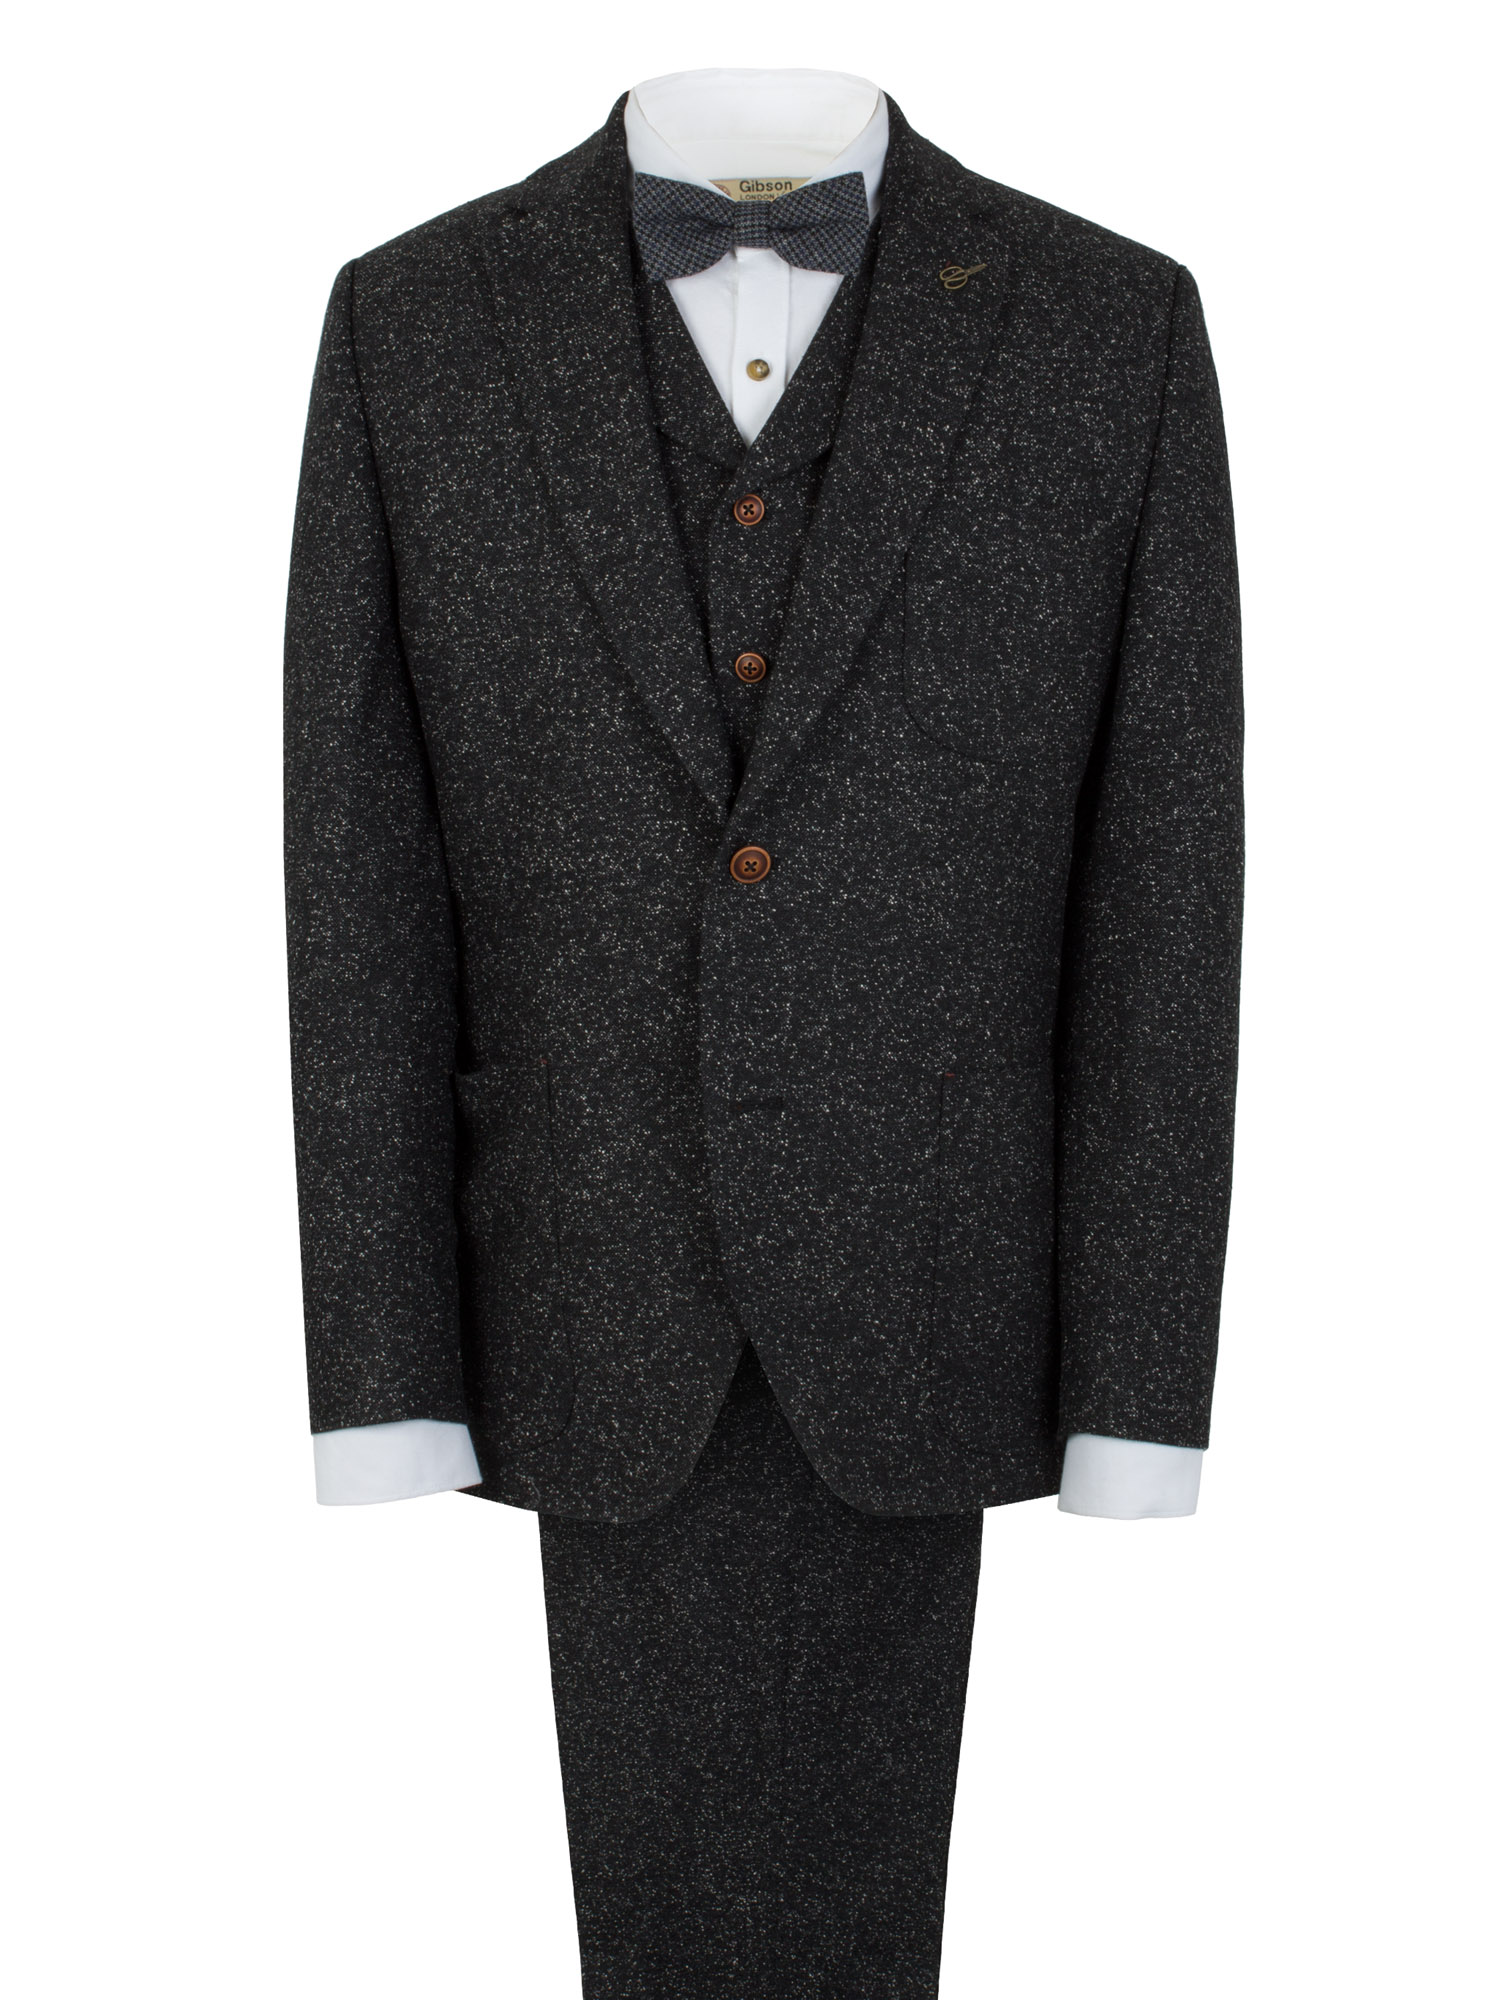 Black Donegal Tweed Suit - Tom Murphy's Formal and Menswear